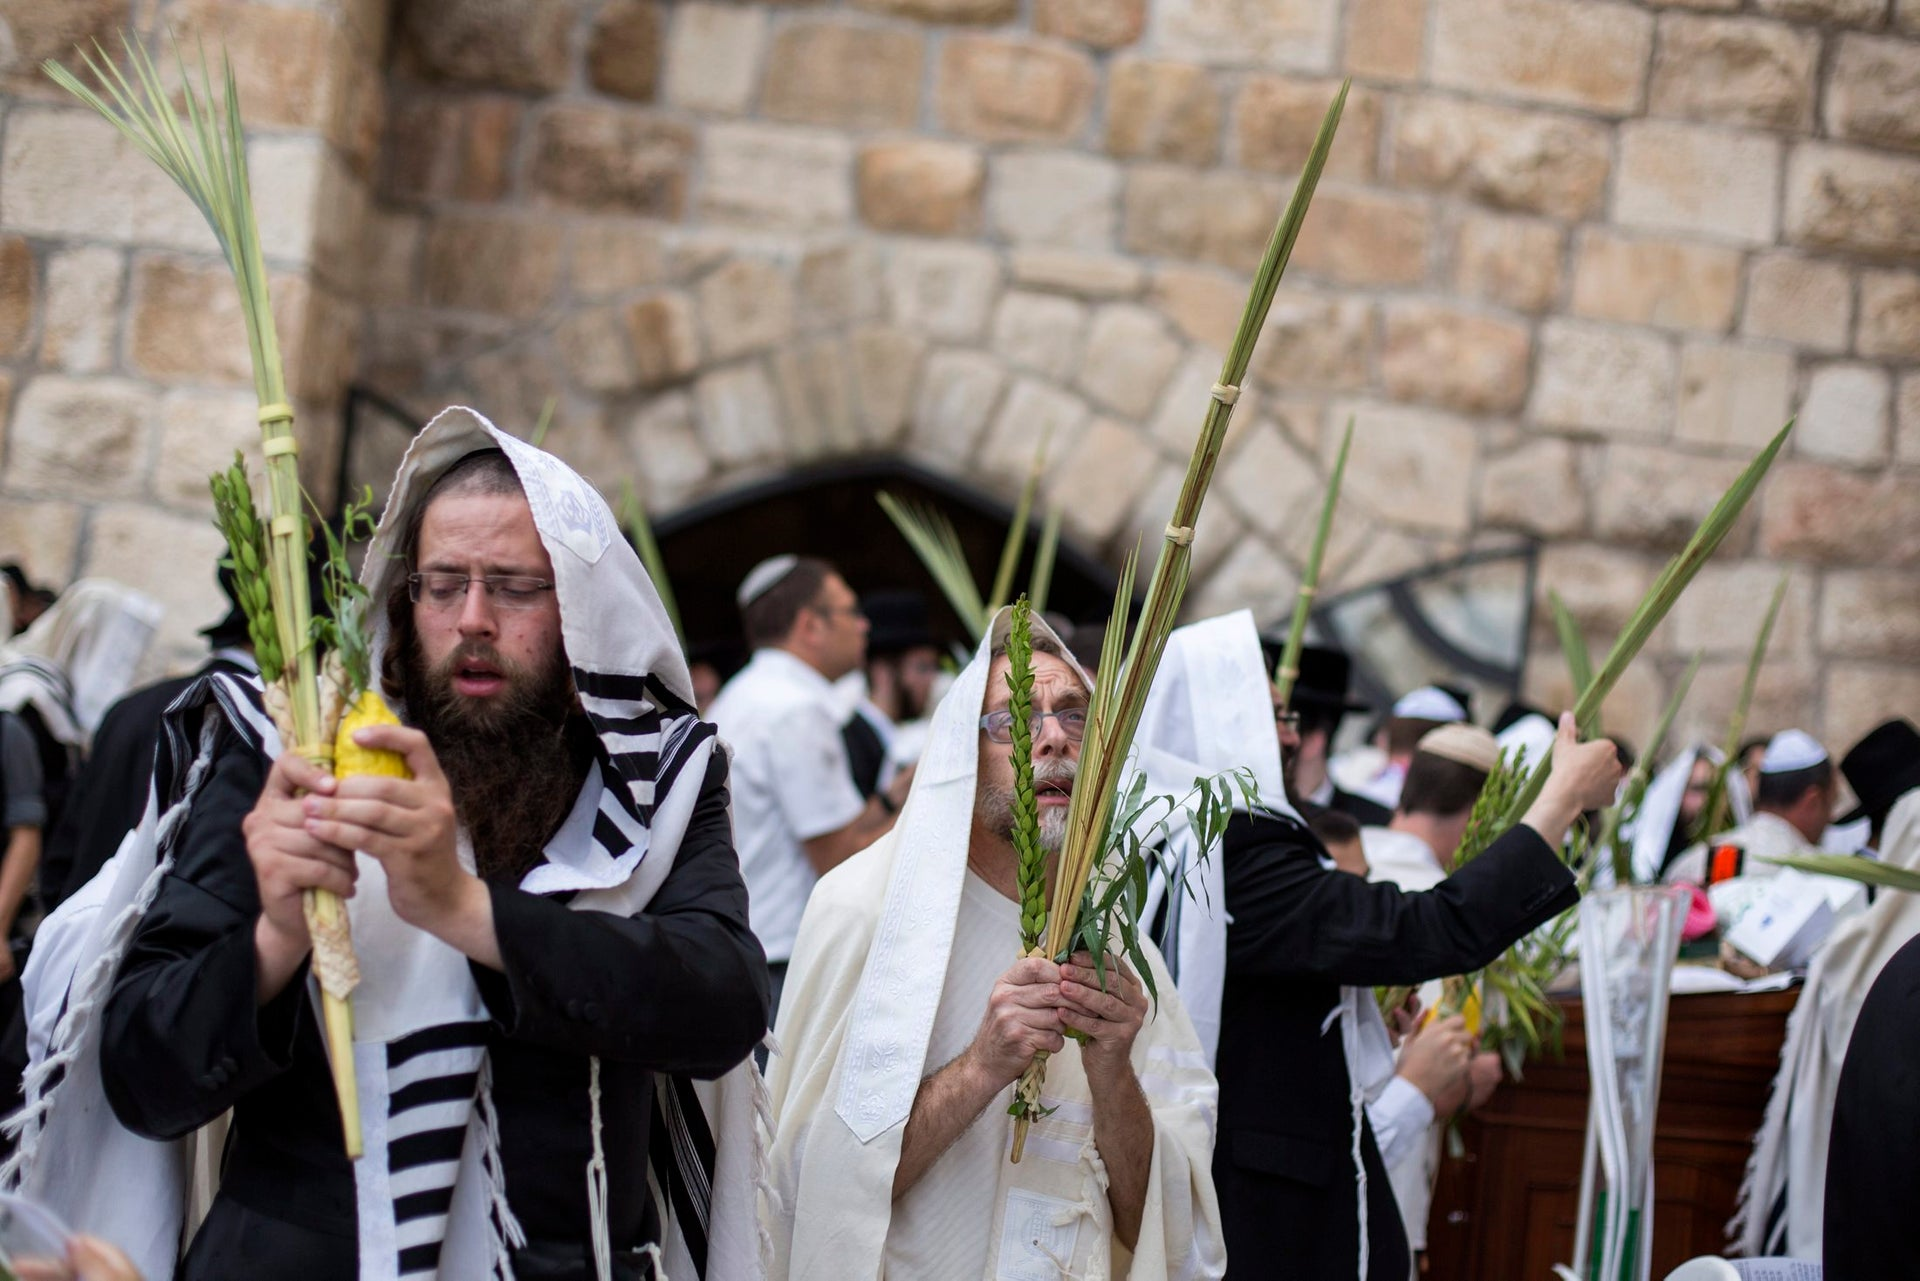 Worshippers recite the priestly blessing at the Western Wall in Jerusalem's Old City during the Jewish holiday of Sukkot, 2015.